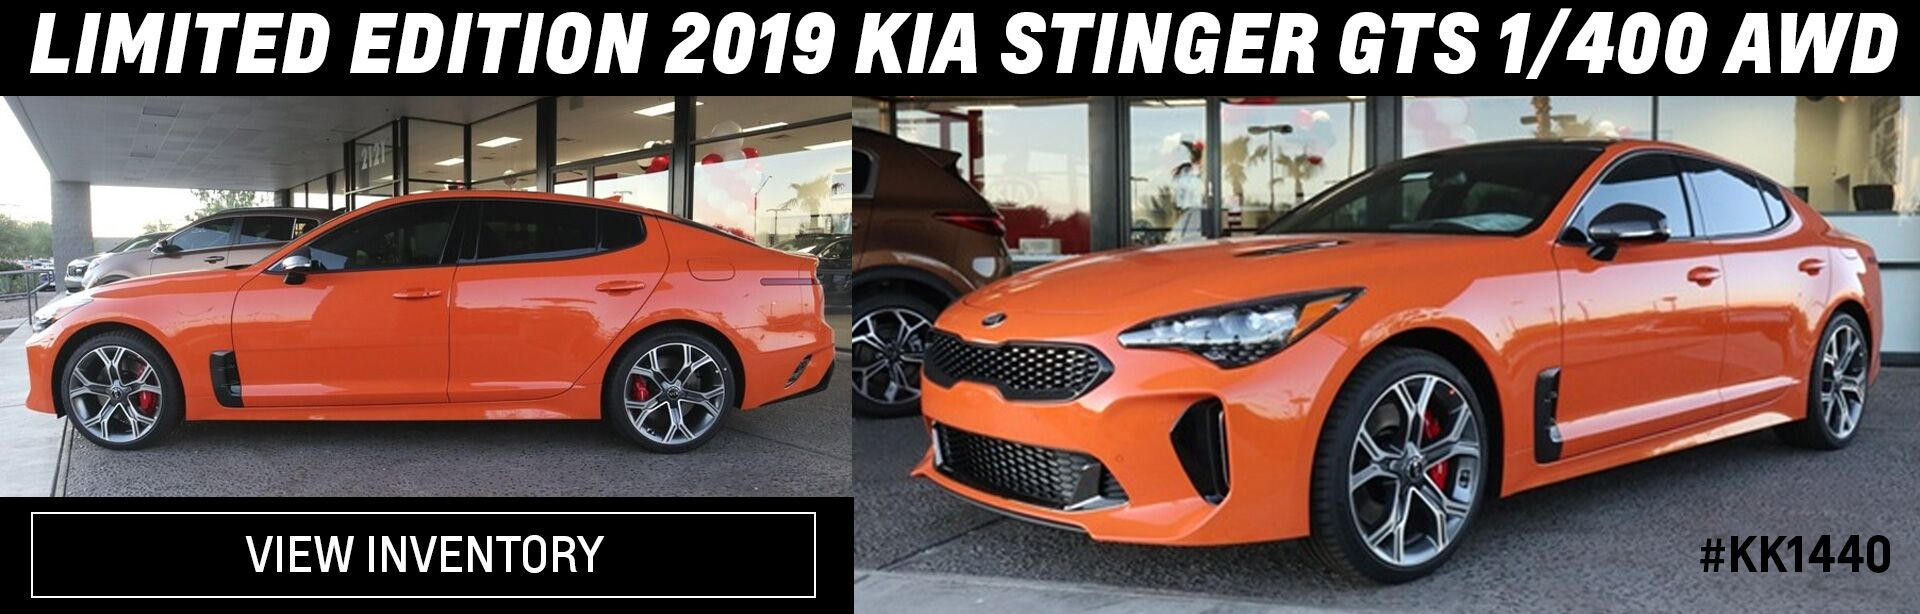 Limited Edition Kia Stinger